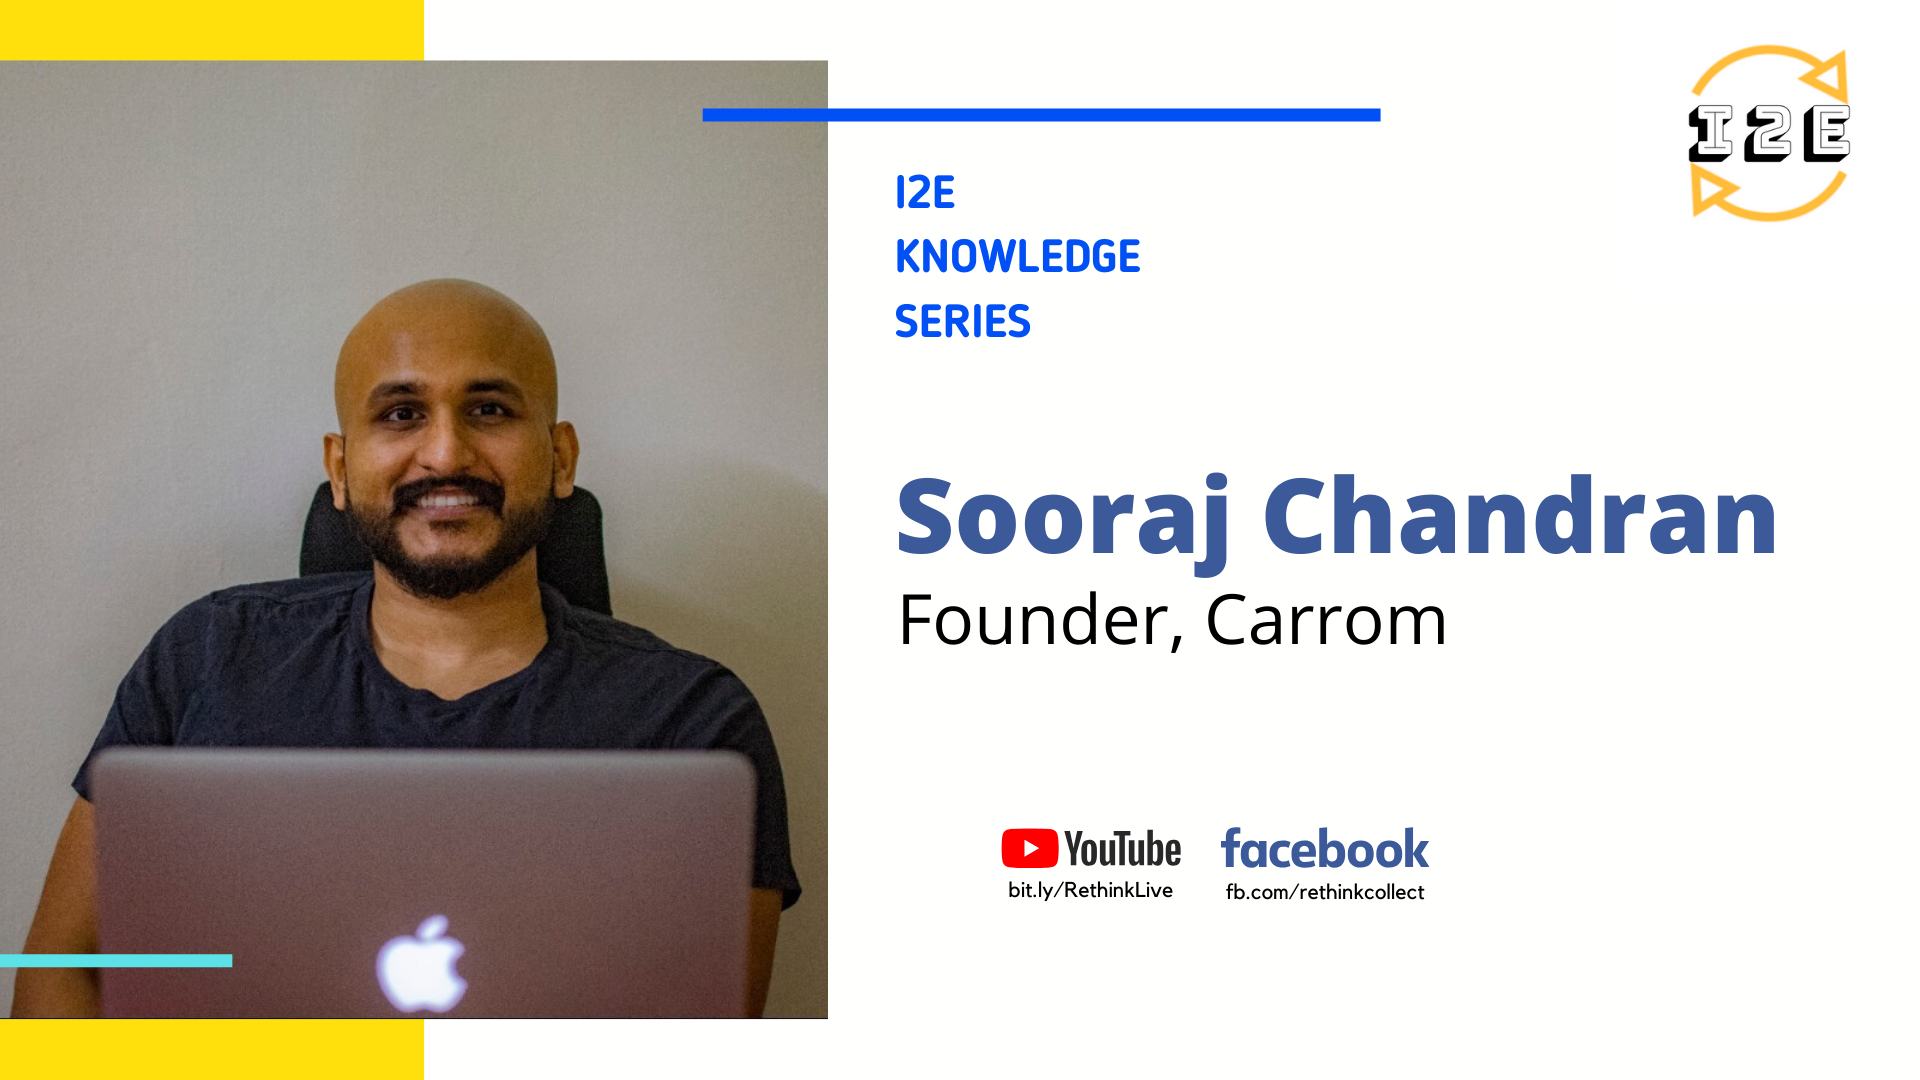 Knowledge Series with Sooraj (Founder, Carrom - acquired by Oyster)